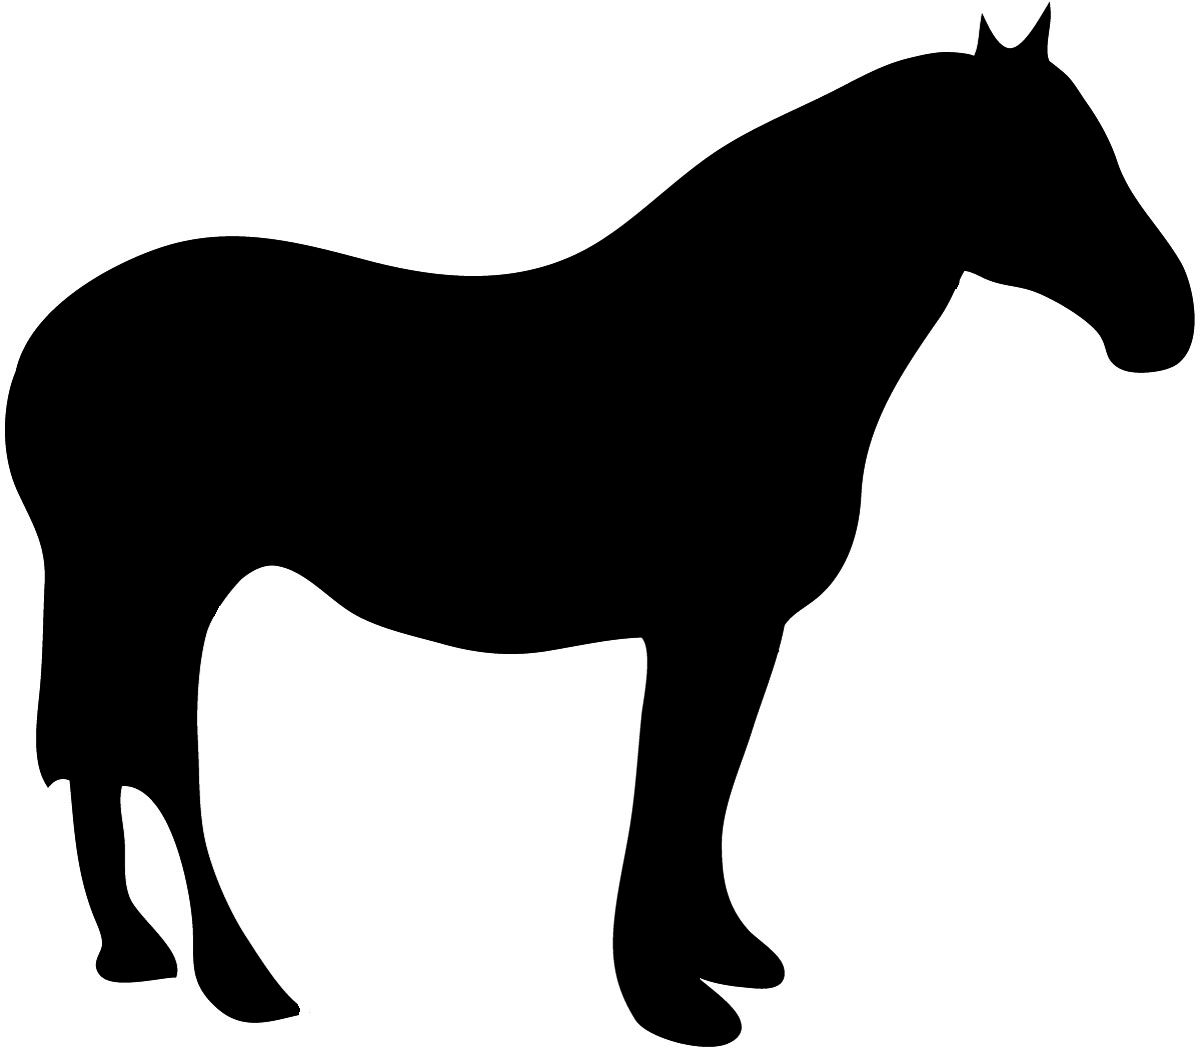 Animal silhouettes clipart image freeuse download Animal Silhouette, Silhouette Clip Art image freeuse download